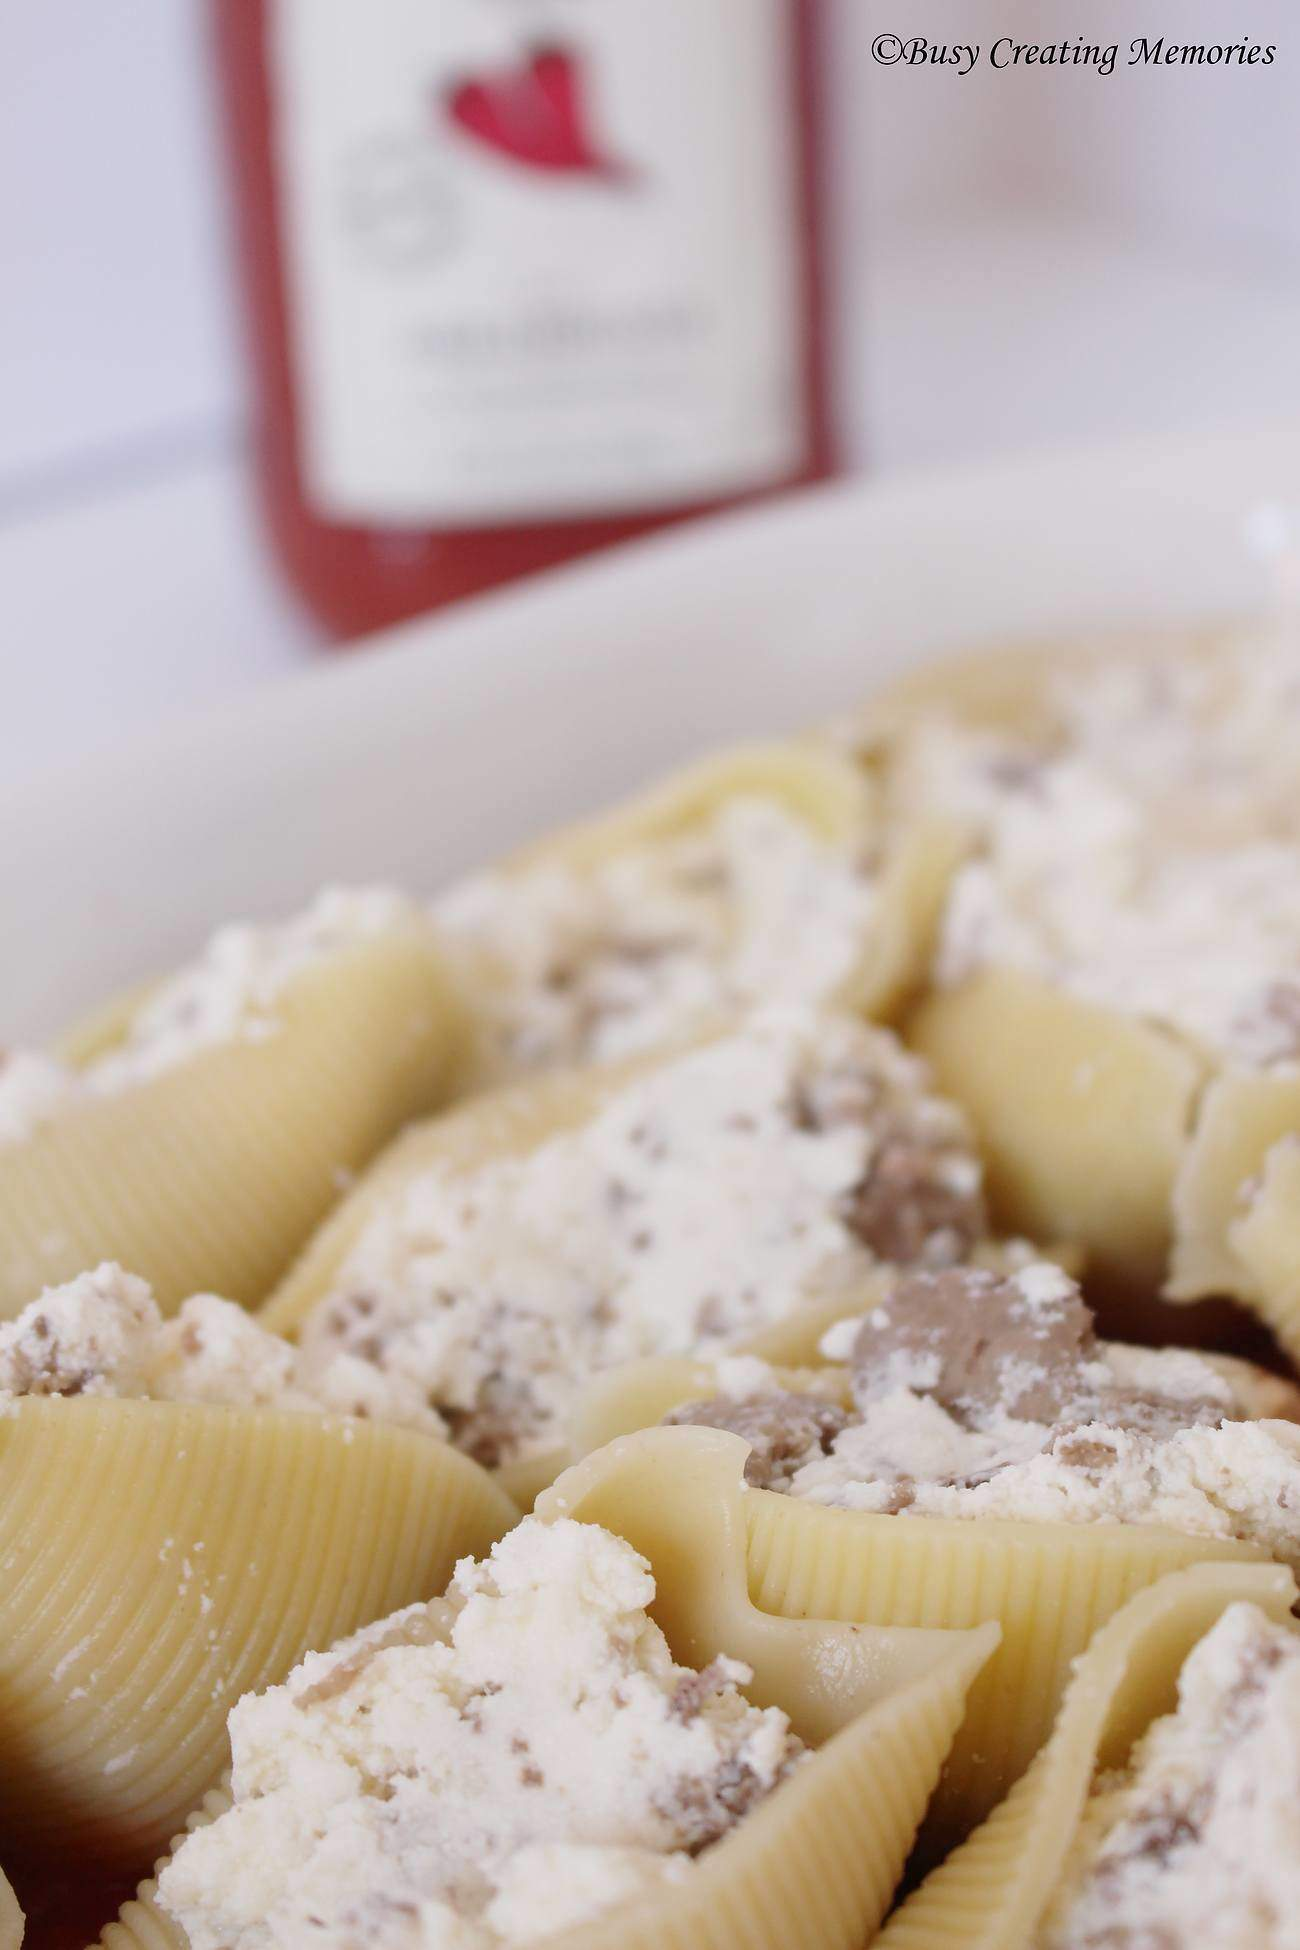 All these stuffed shells need is a little sauce and dinner is ready!